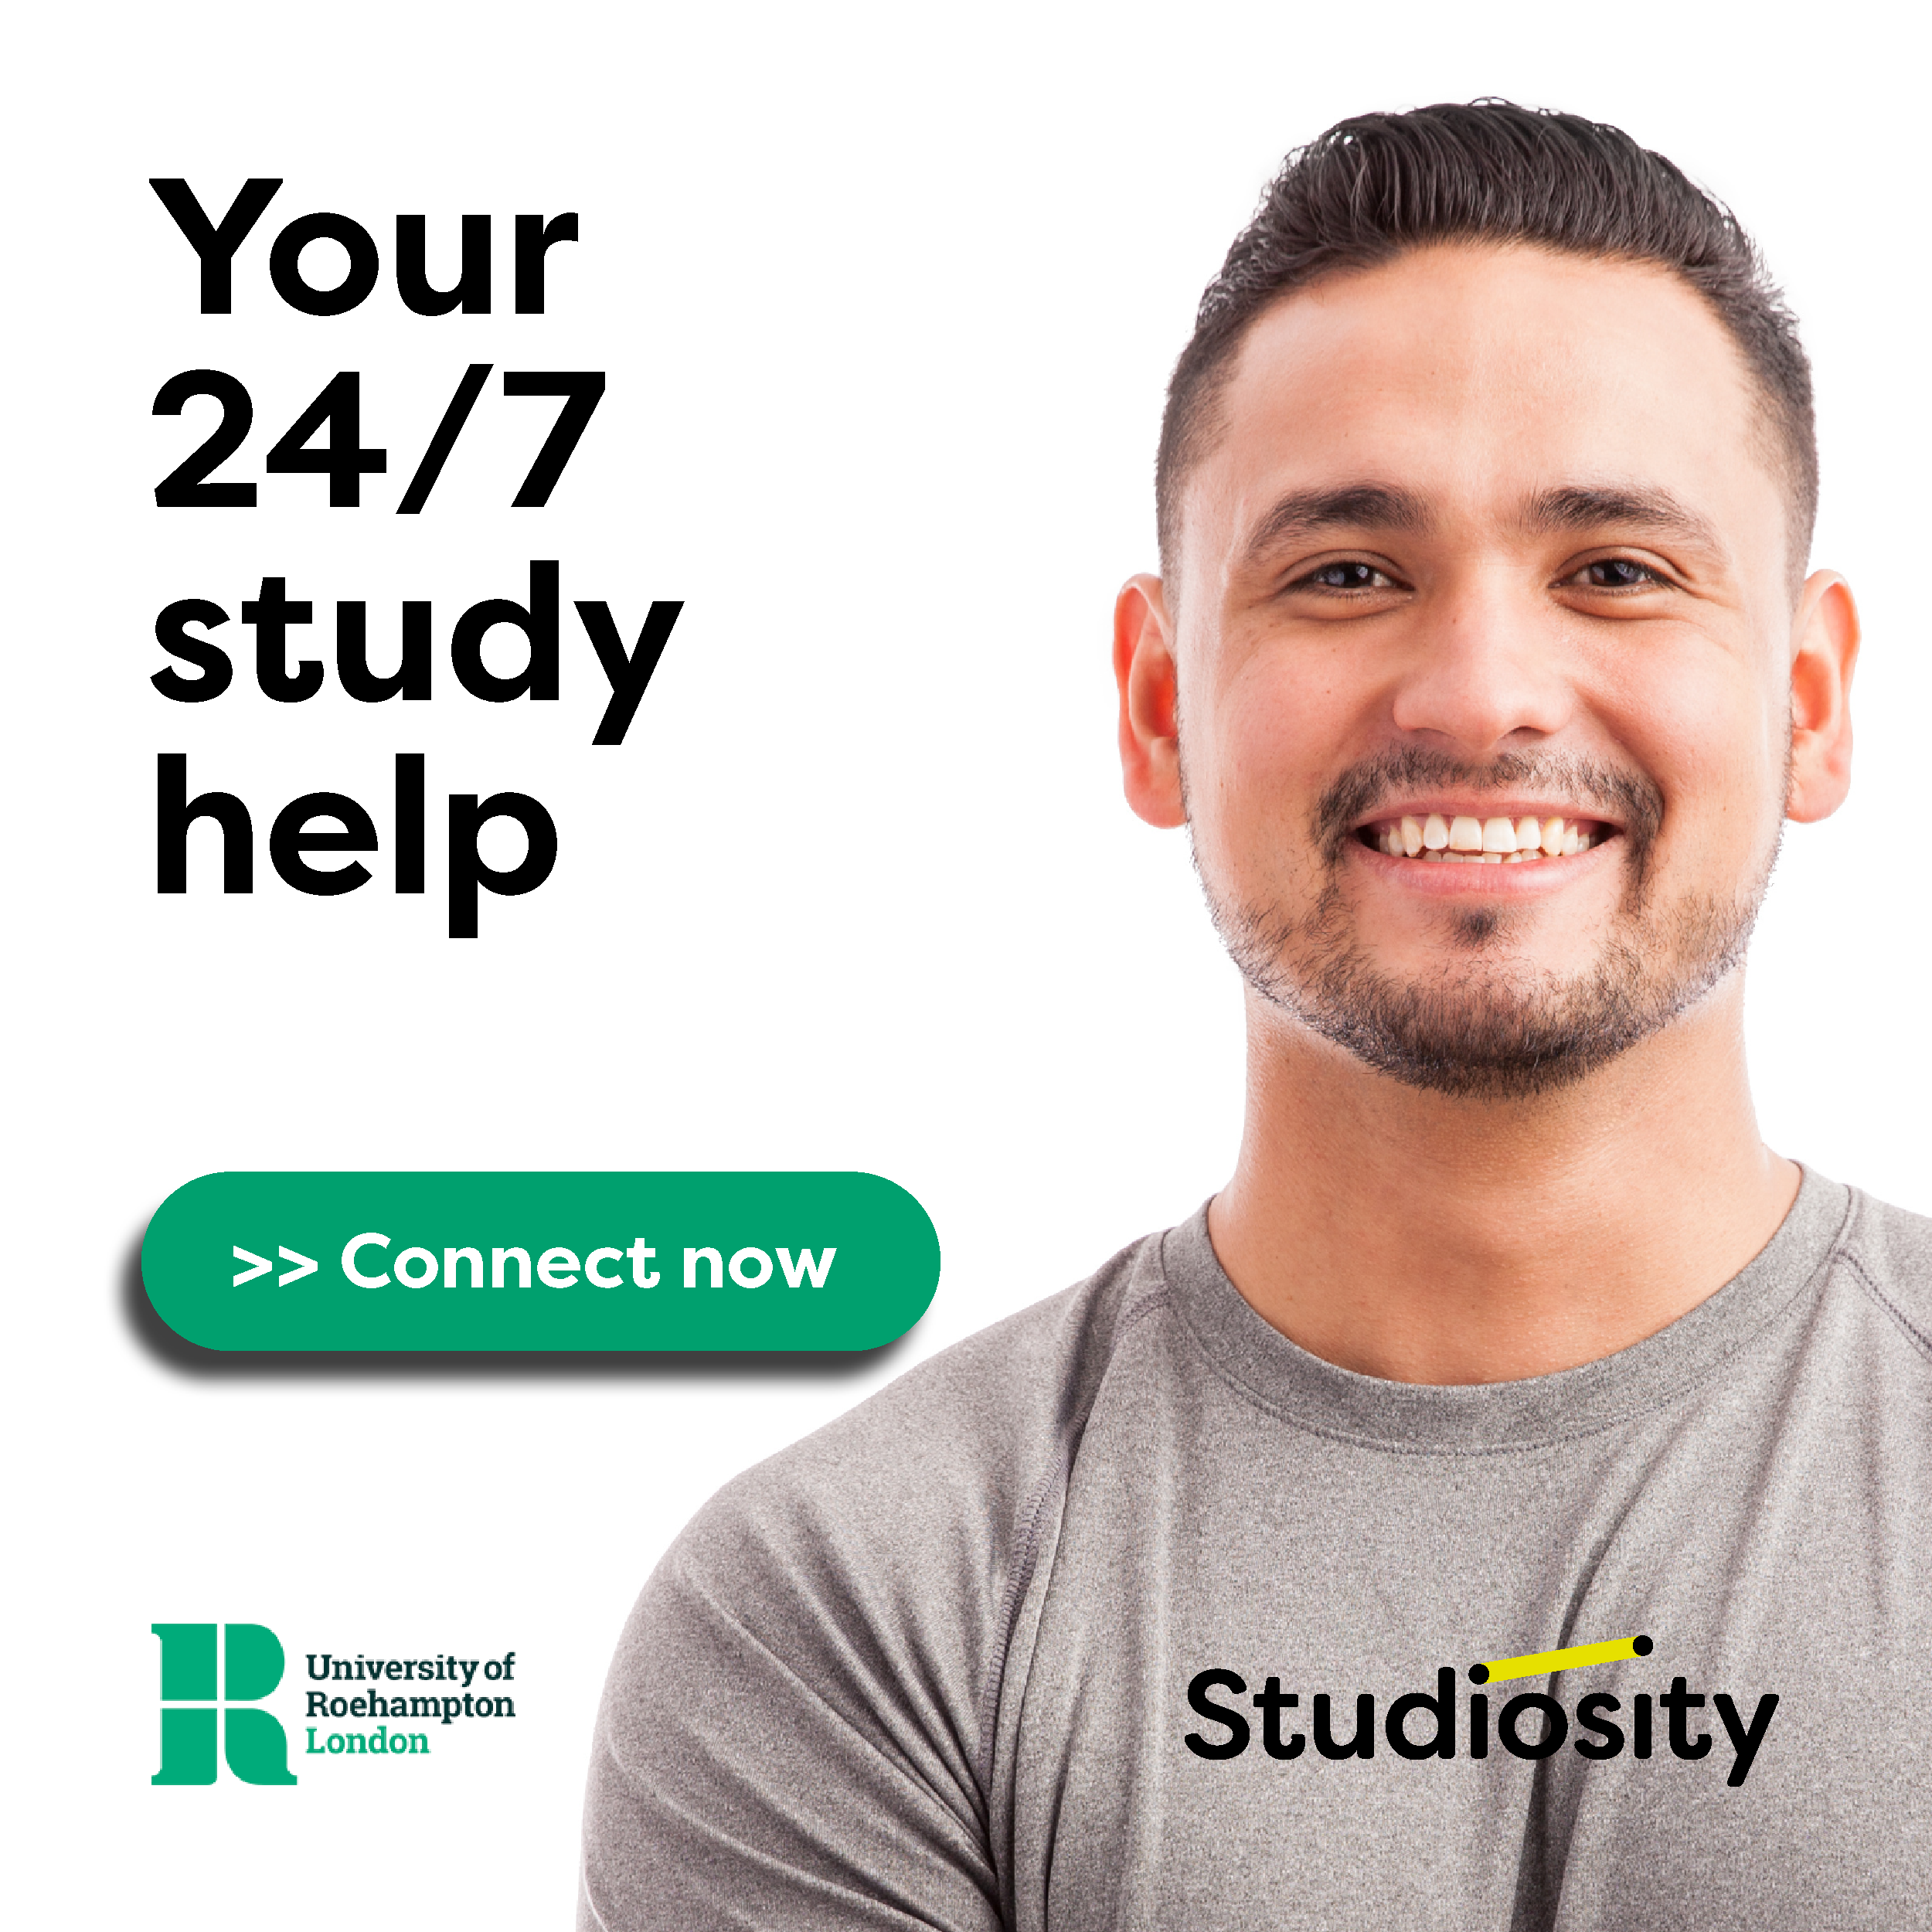 24/7 study help on Studiosity